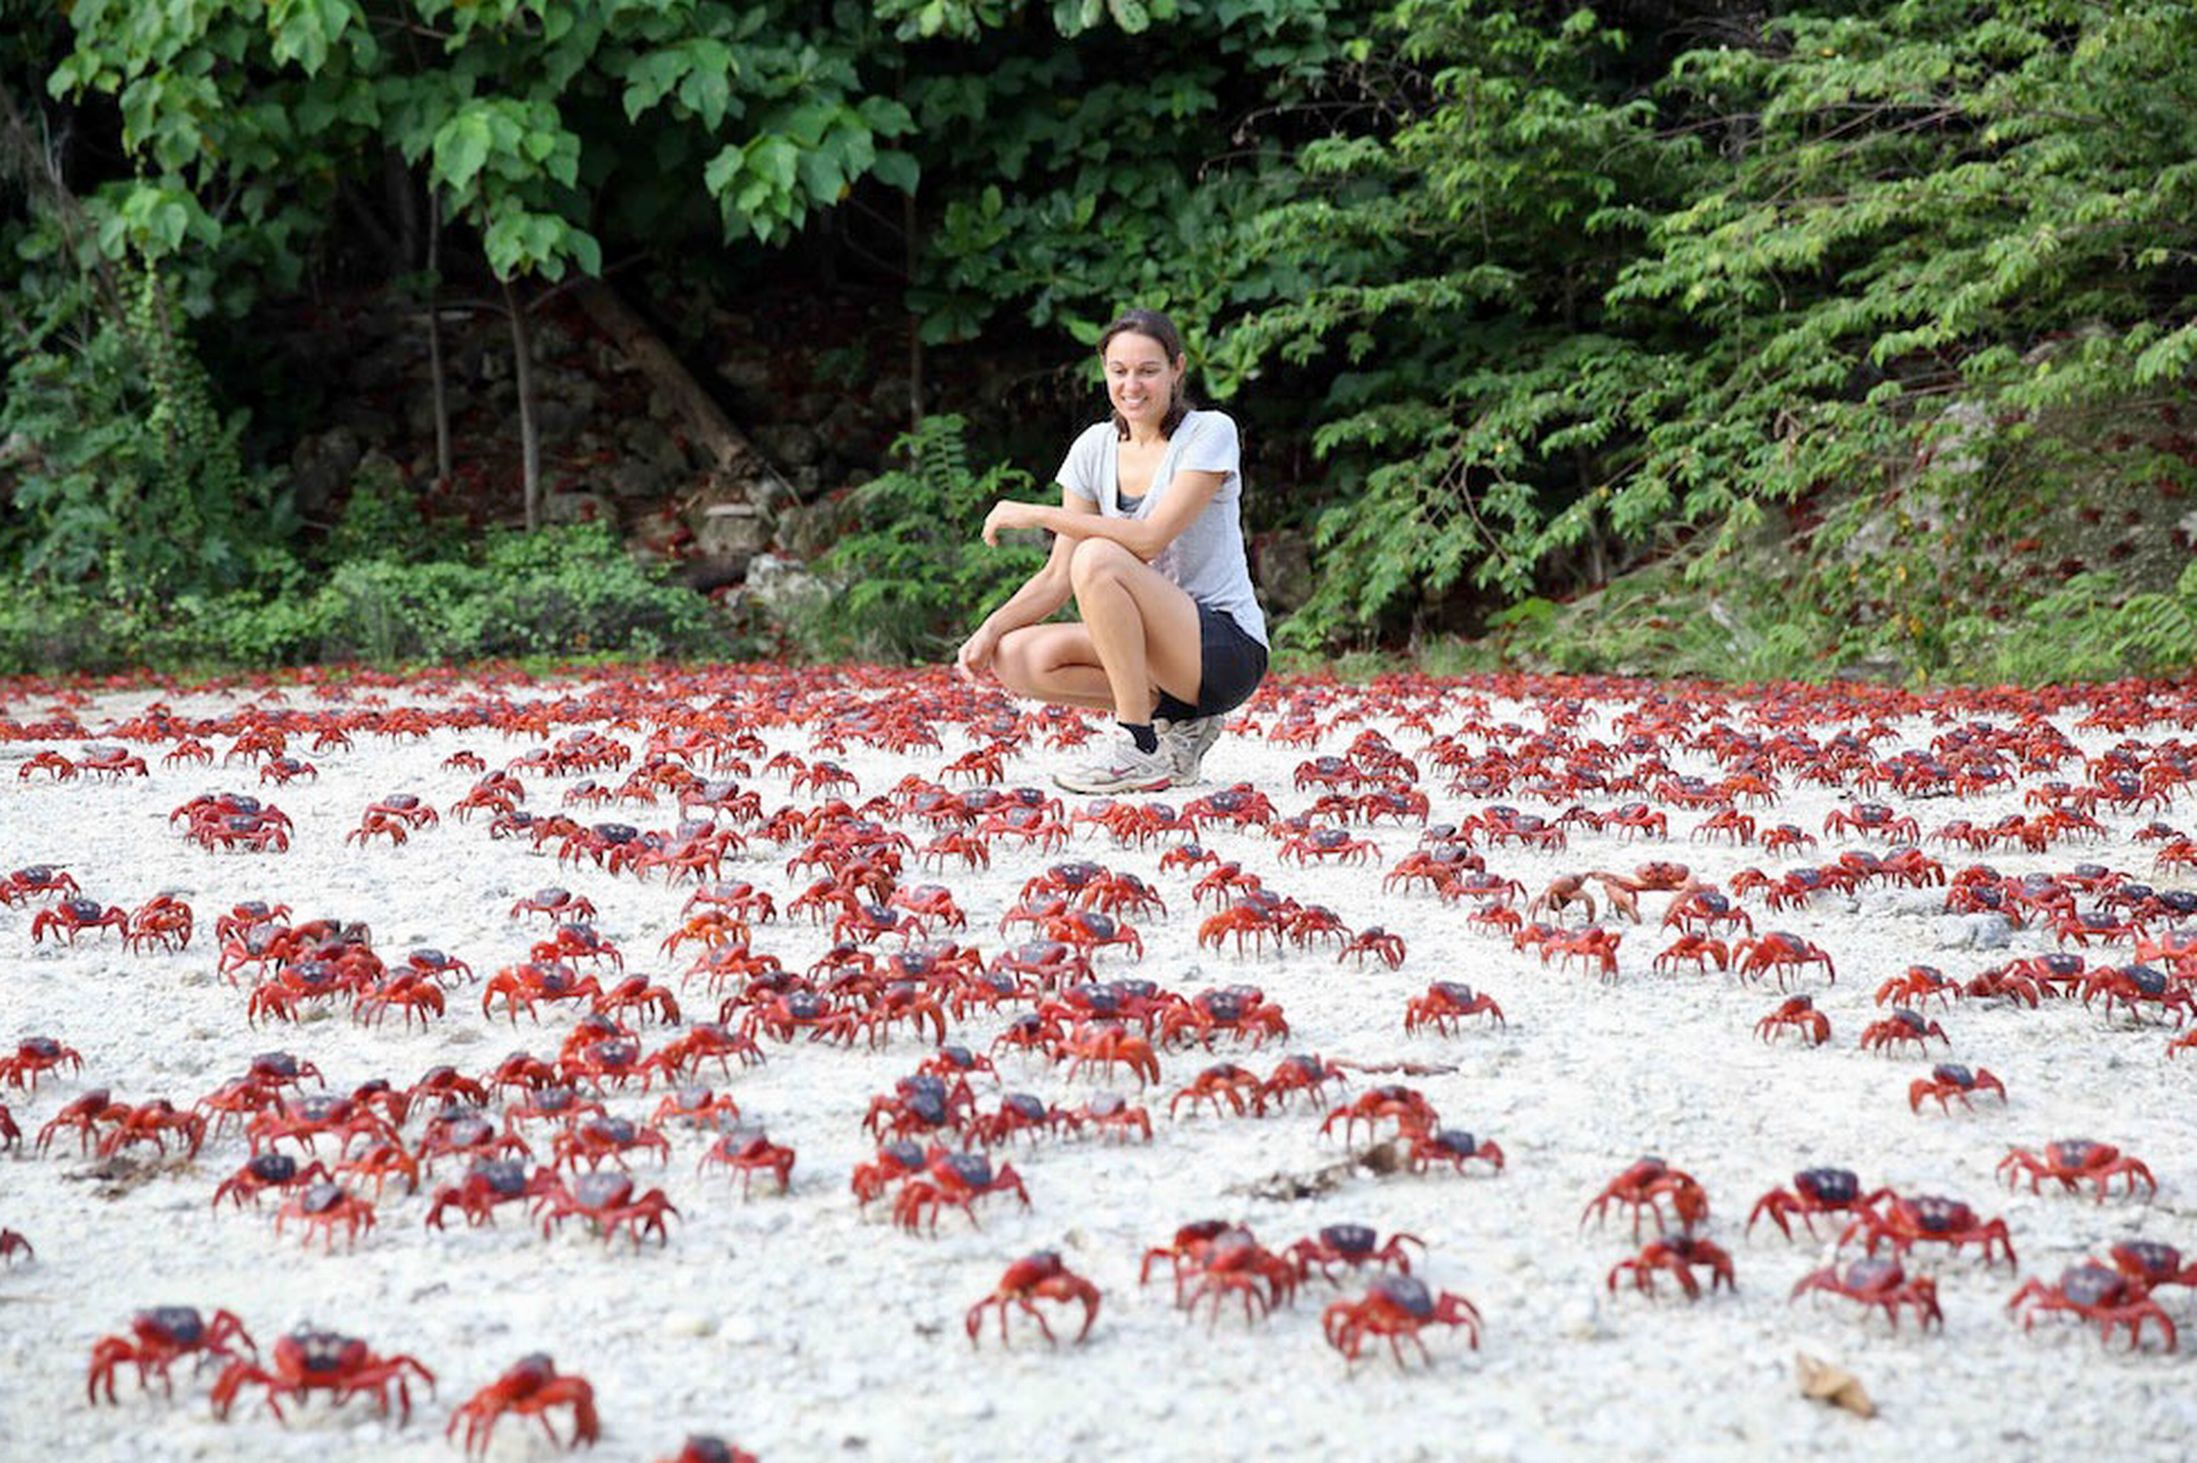 christmas-islands-red-crabs_natural-phenomena